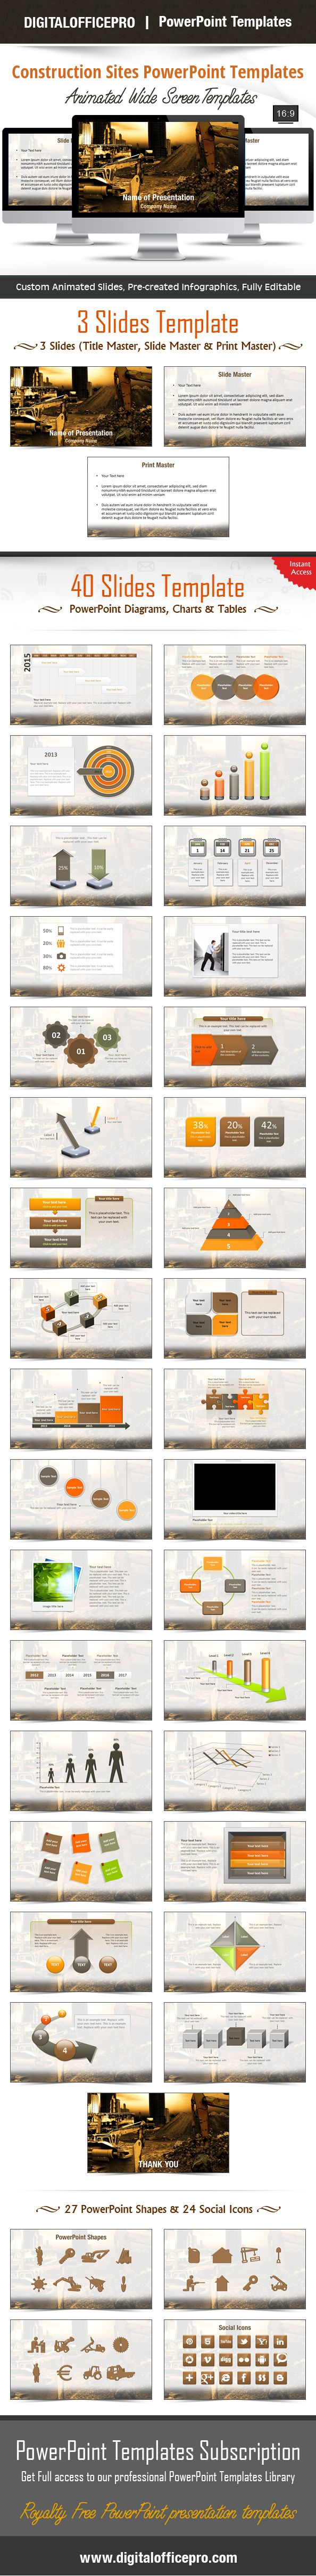 Impress and Engage your audience with Construction Sites PowerPoint Template and Construction Sites PowerPoint Backgrounds from DigitalOfficePro. Each template comes with a set of PowerPoint Diagrams, Charts & Shapes and are available for instant download.